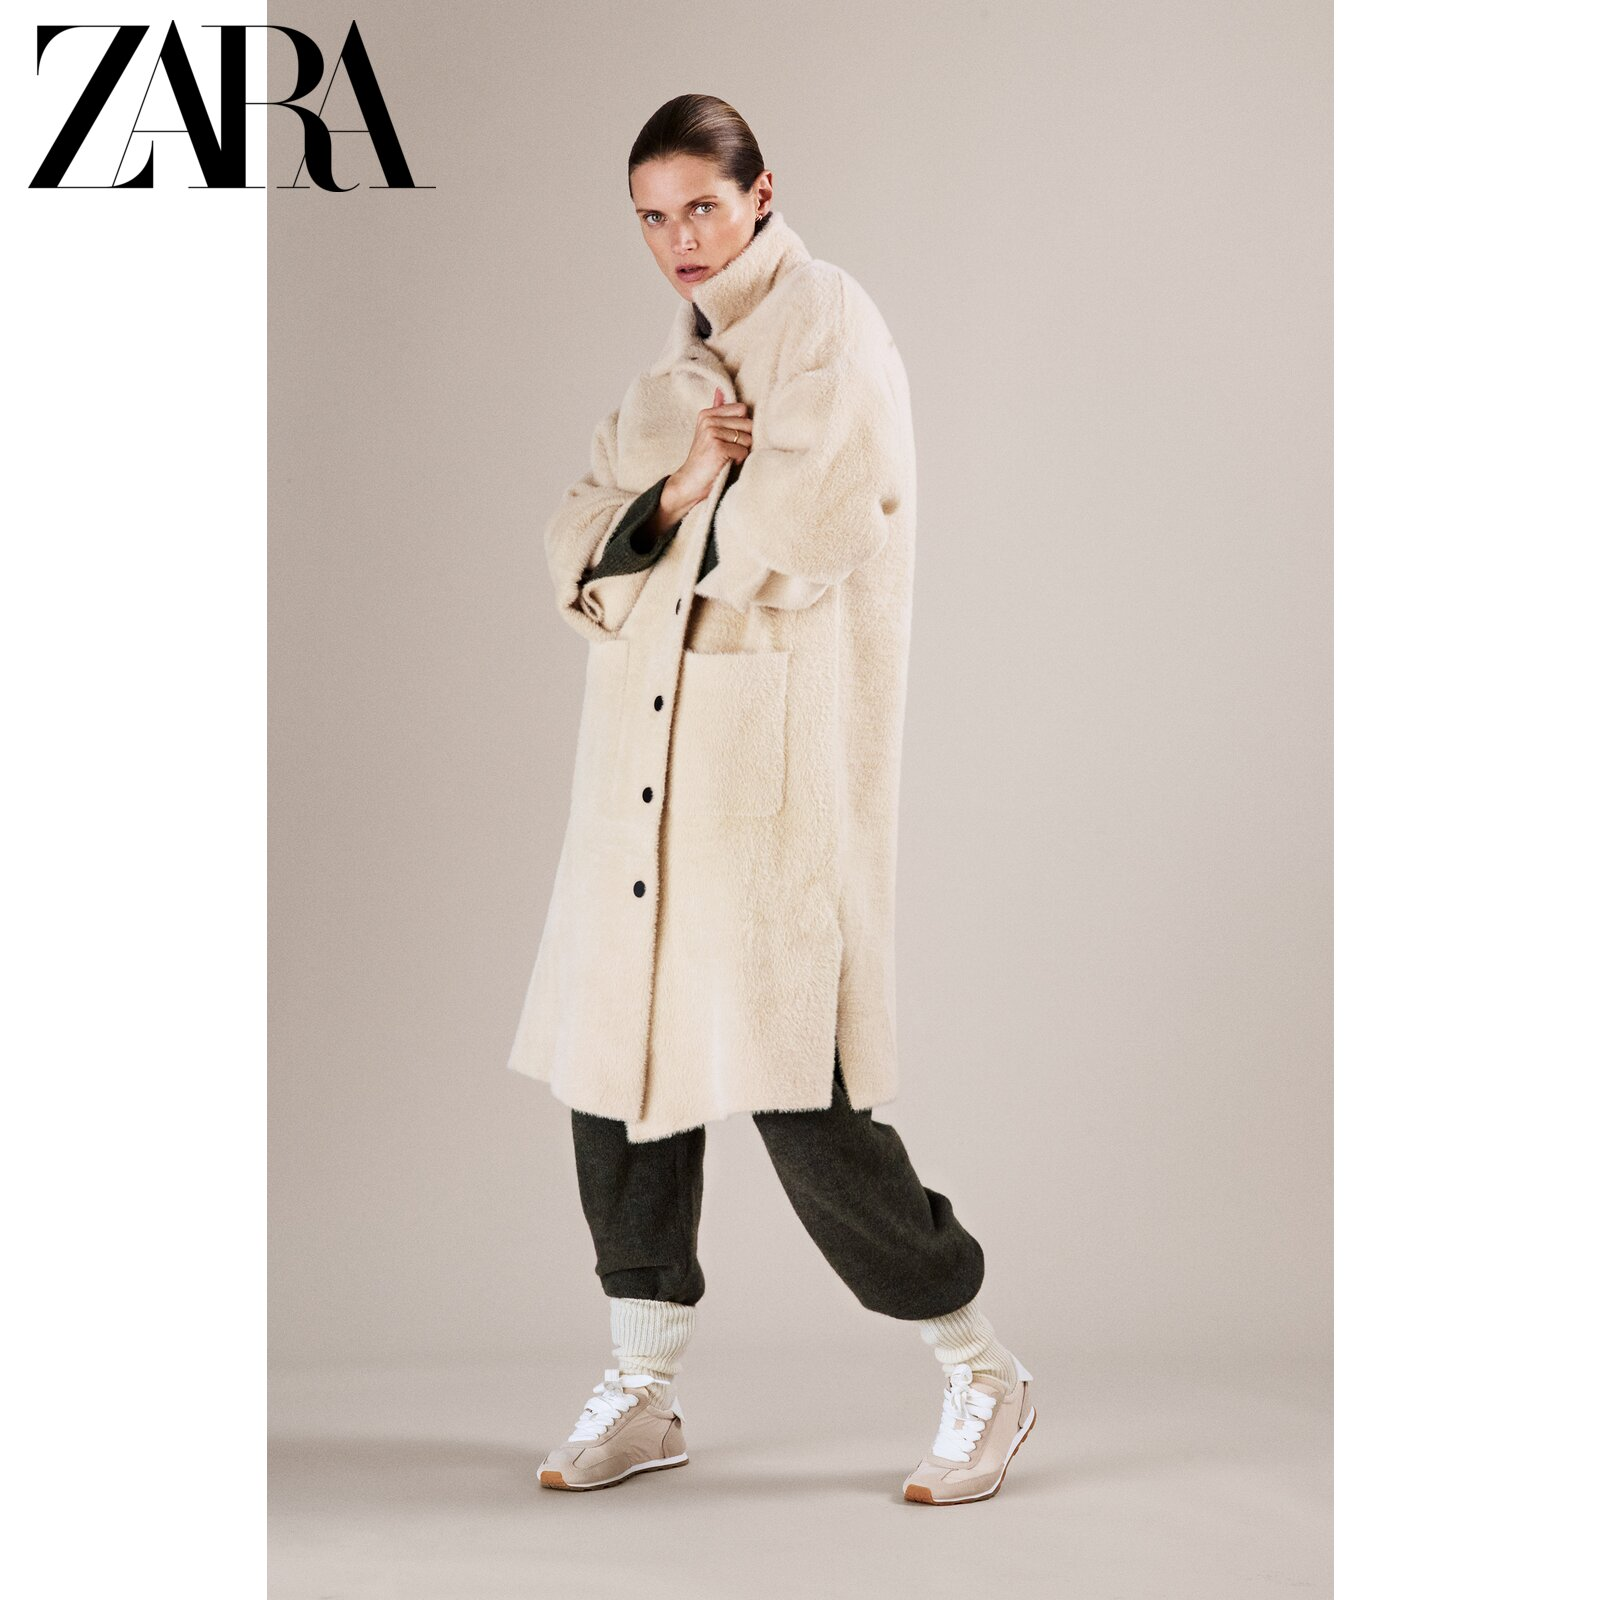 Zara new faux fur effect loose coat 01736101712